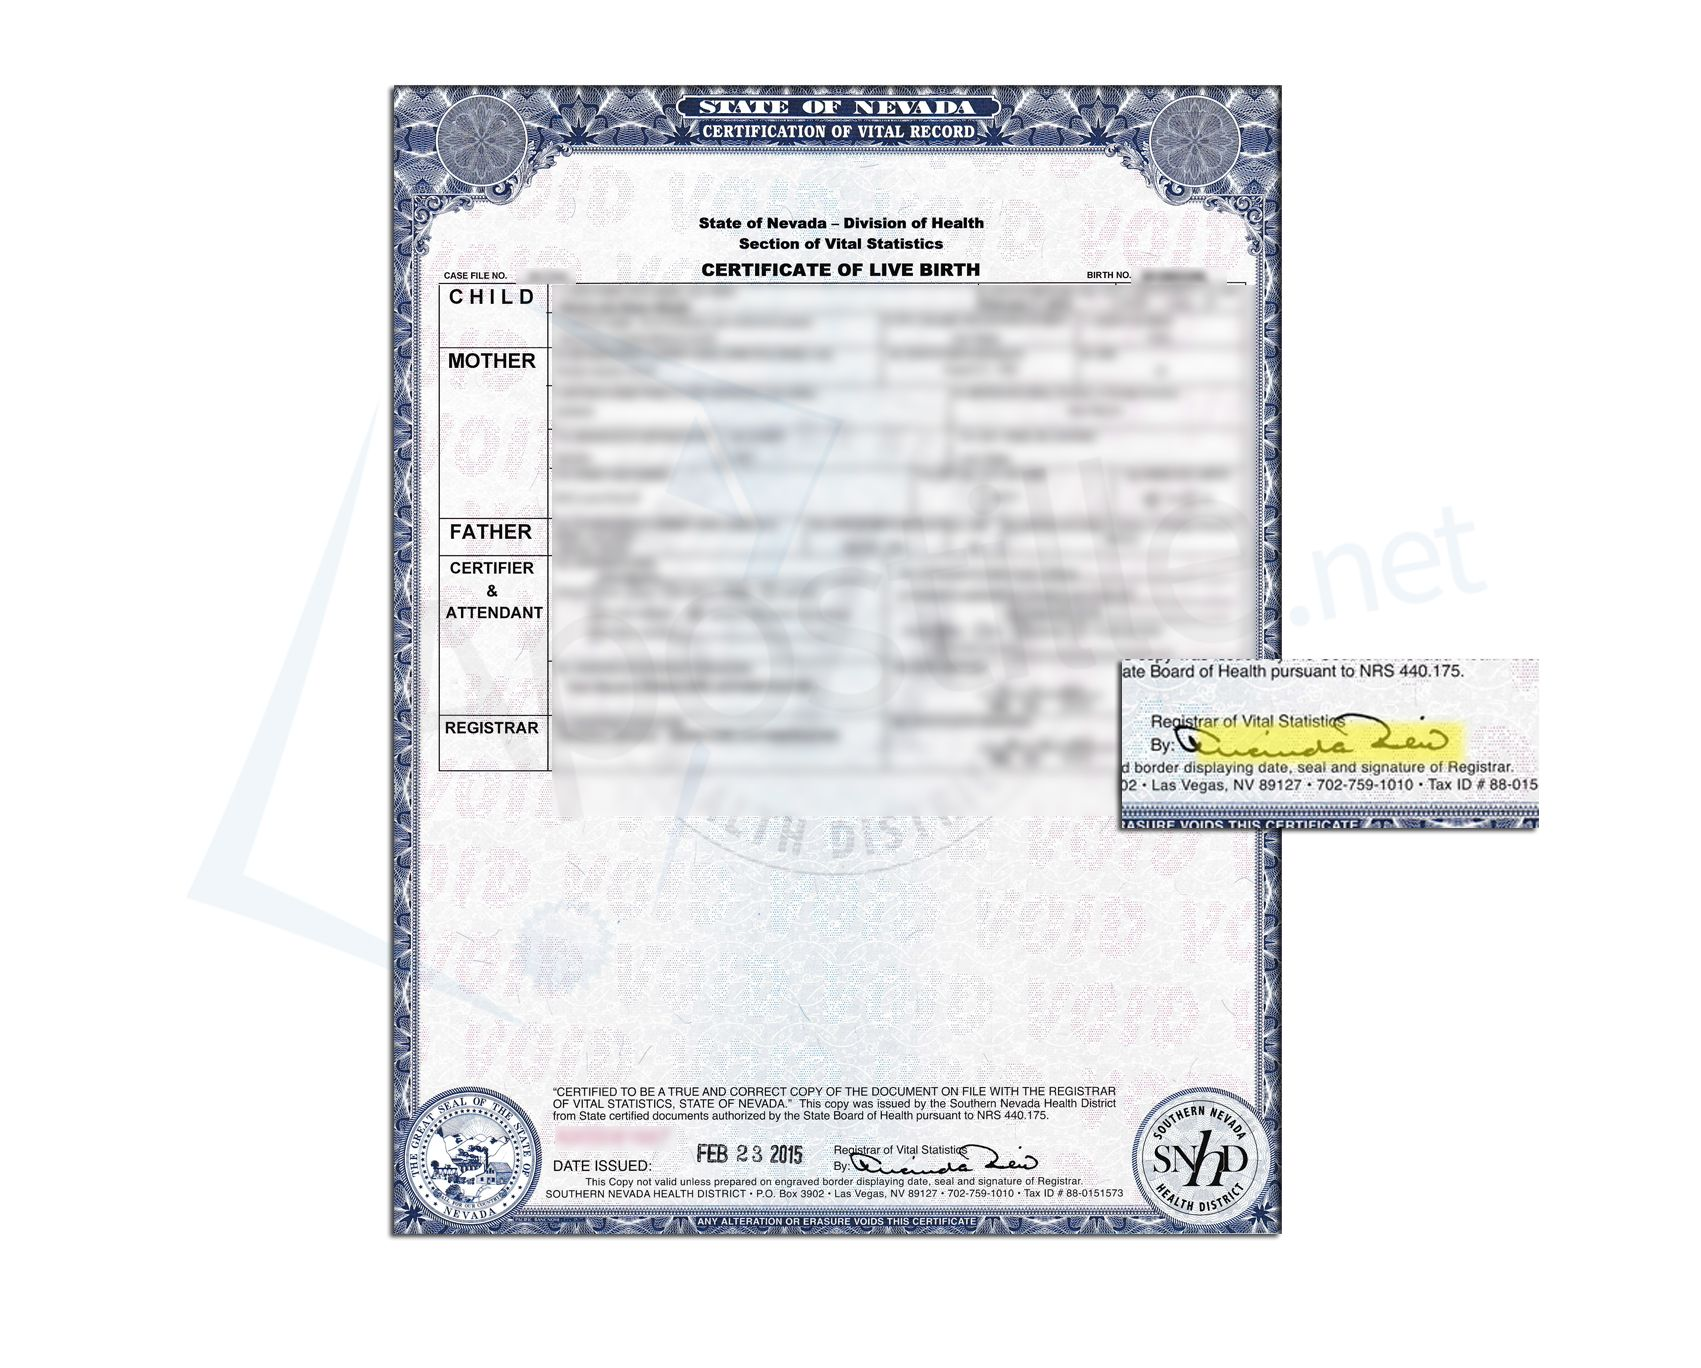 State of nevada birth certificate issued by a state registrar state of nevada birth certificate issued by a state registrar xflitez Gallery